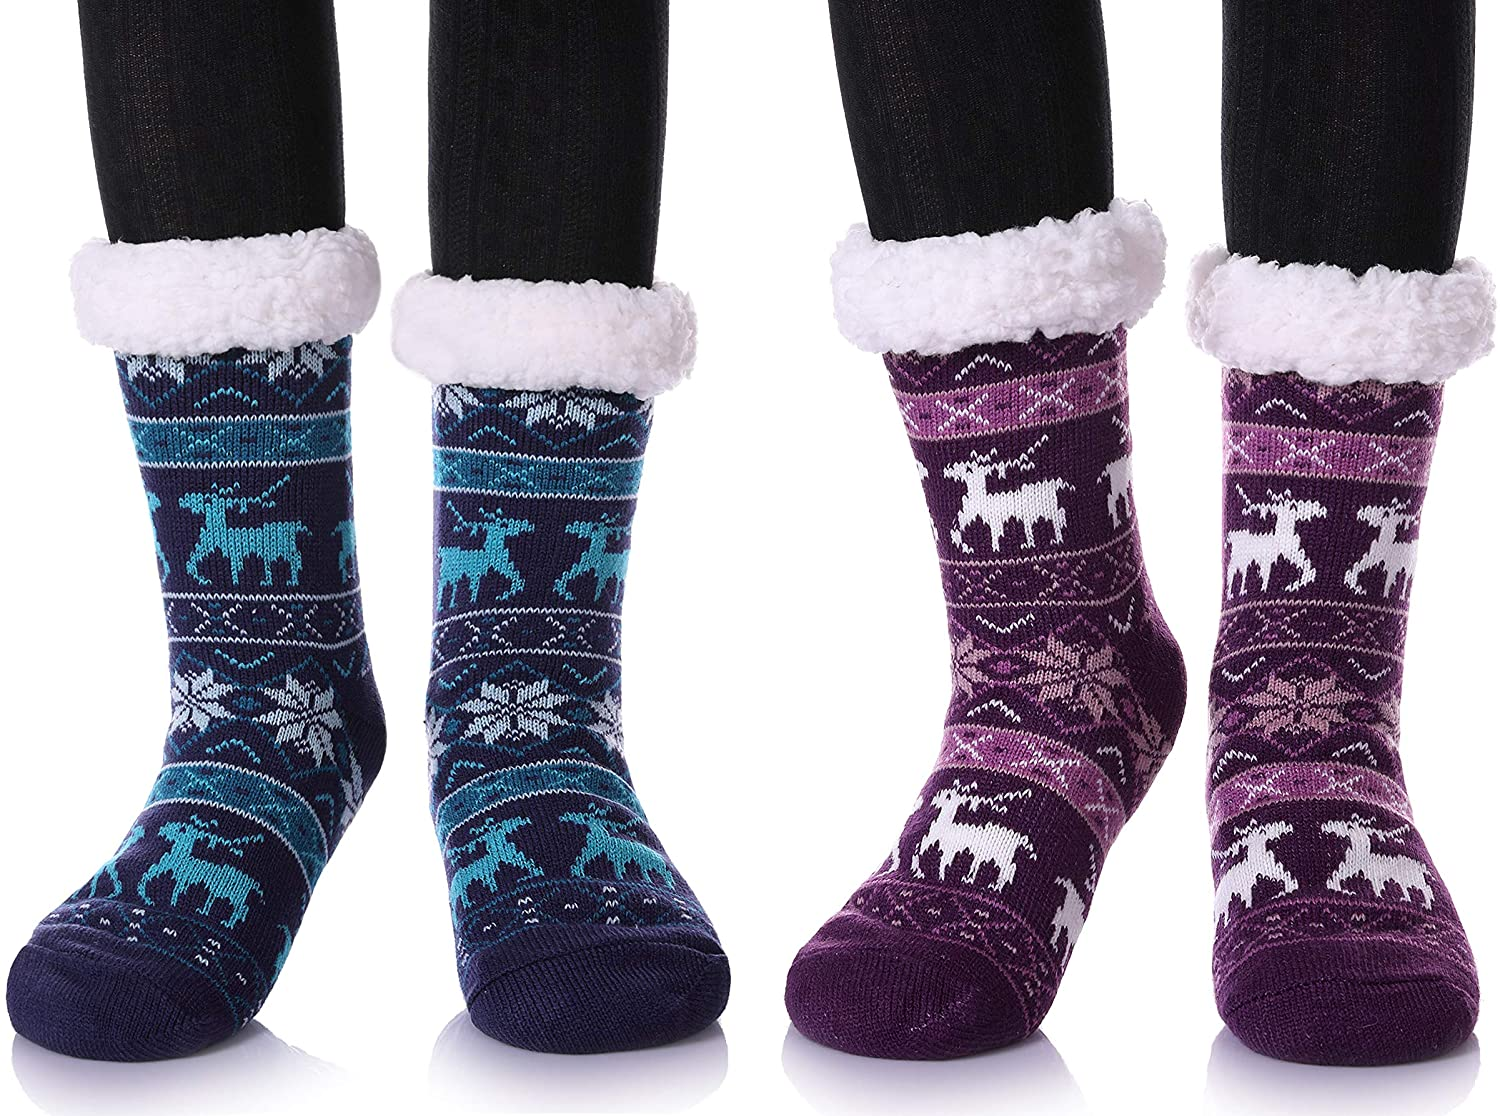 2 Pairs Women's Winter Super Soft Warm Cozy Fuzzy Snowflake Deer Fleece-lined Christmas Gift With Grippers Slipper Socks